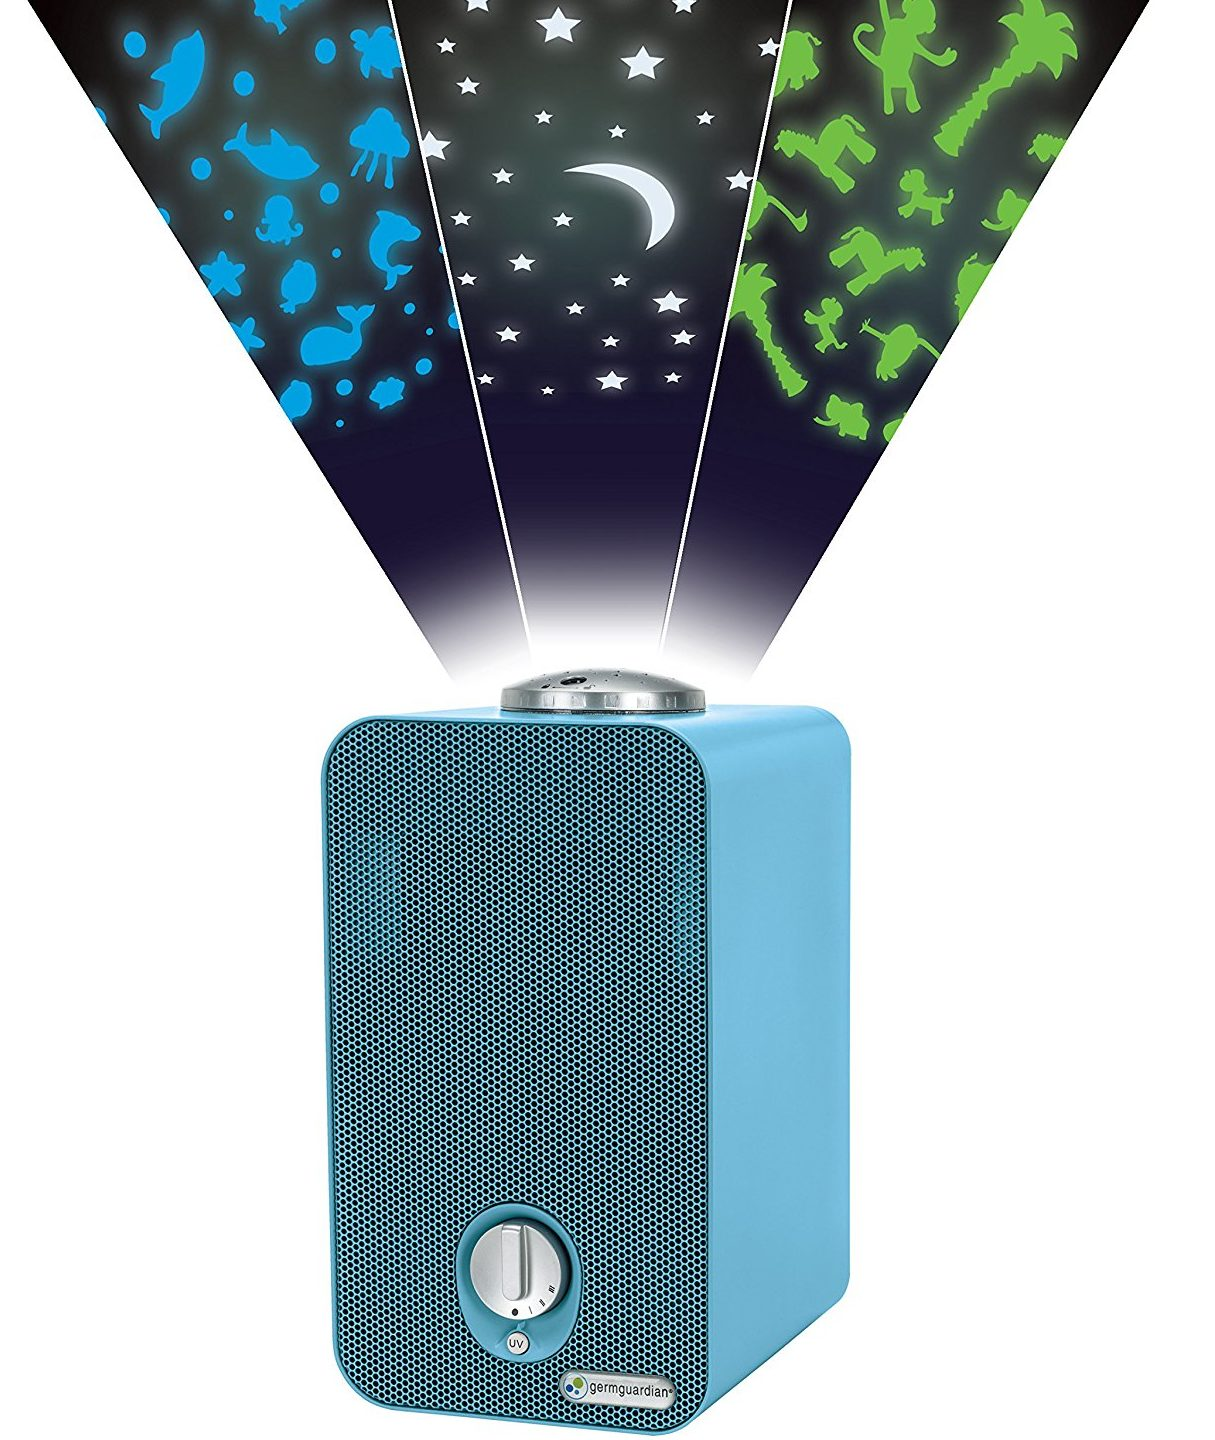 GermGuardian 4-in-1 Cleaning System and Projector